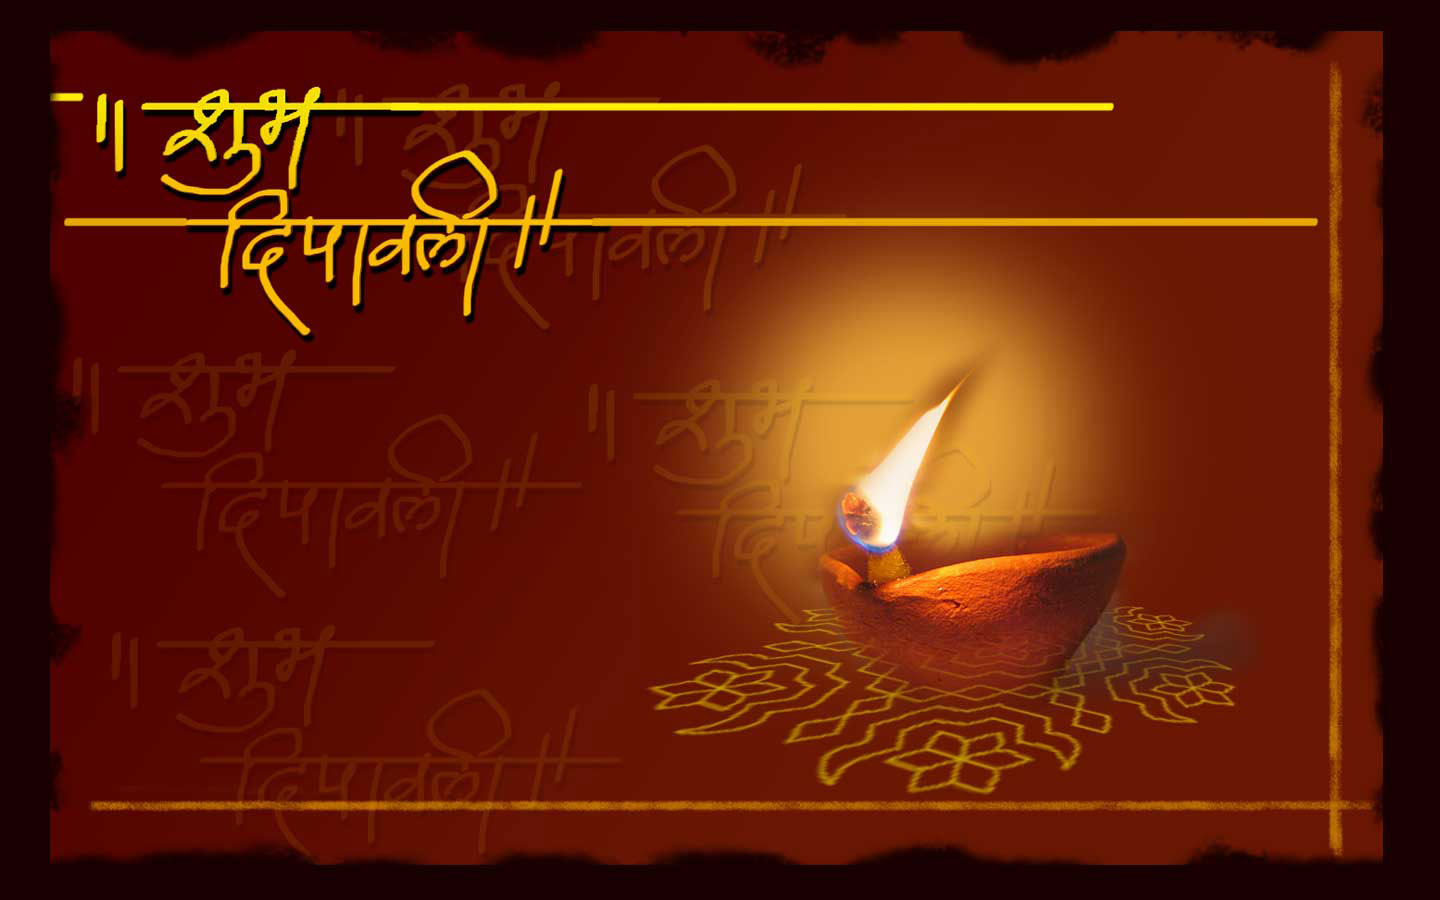 Diwali information in marathi custom paper service znessayckwz diwali information in marathi diwali chakali recipe in english here is the link for english version m4hsunfo